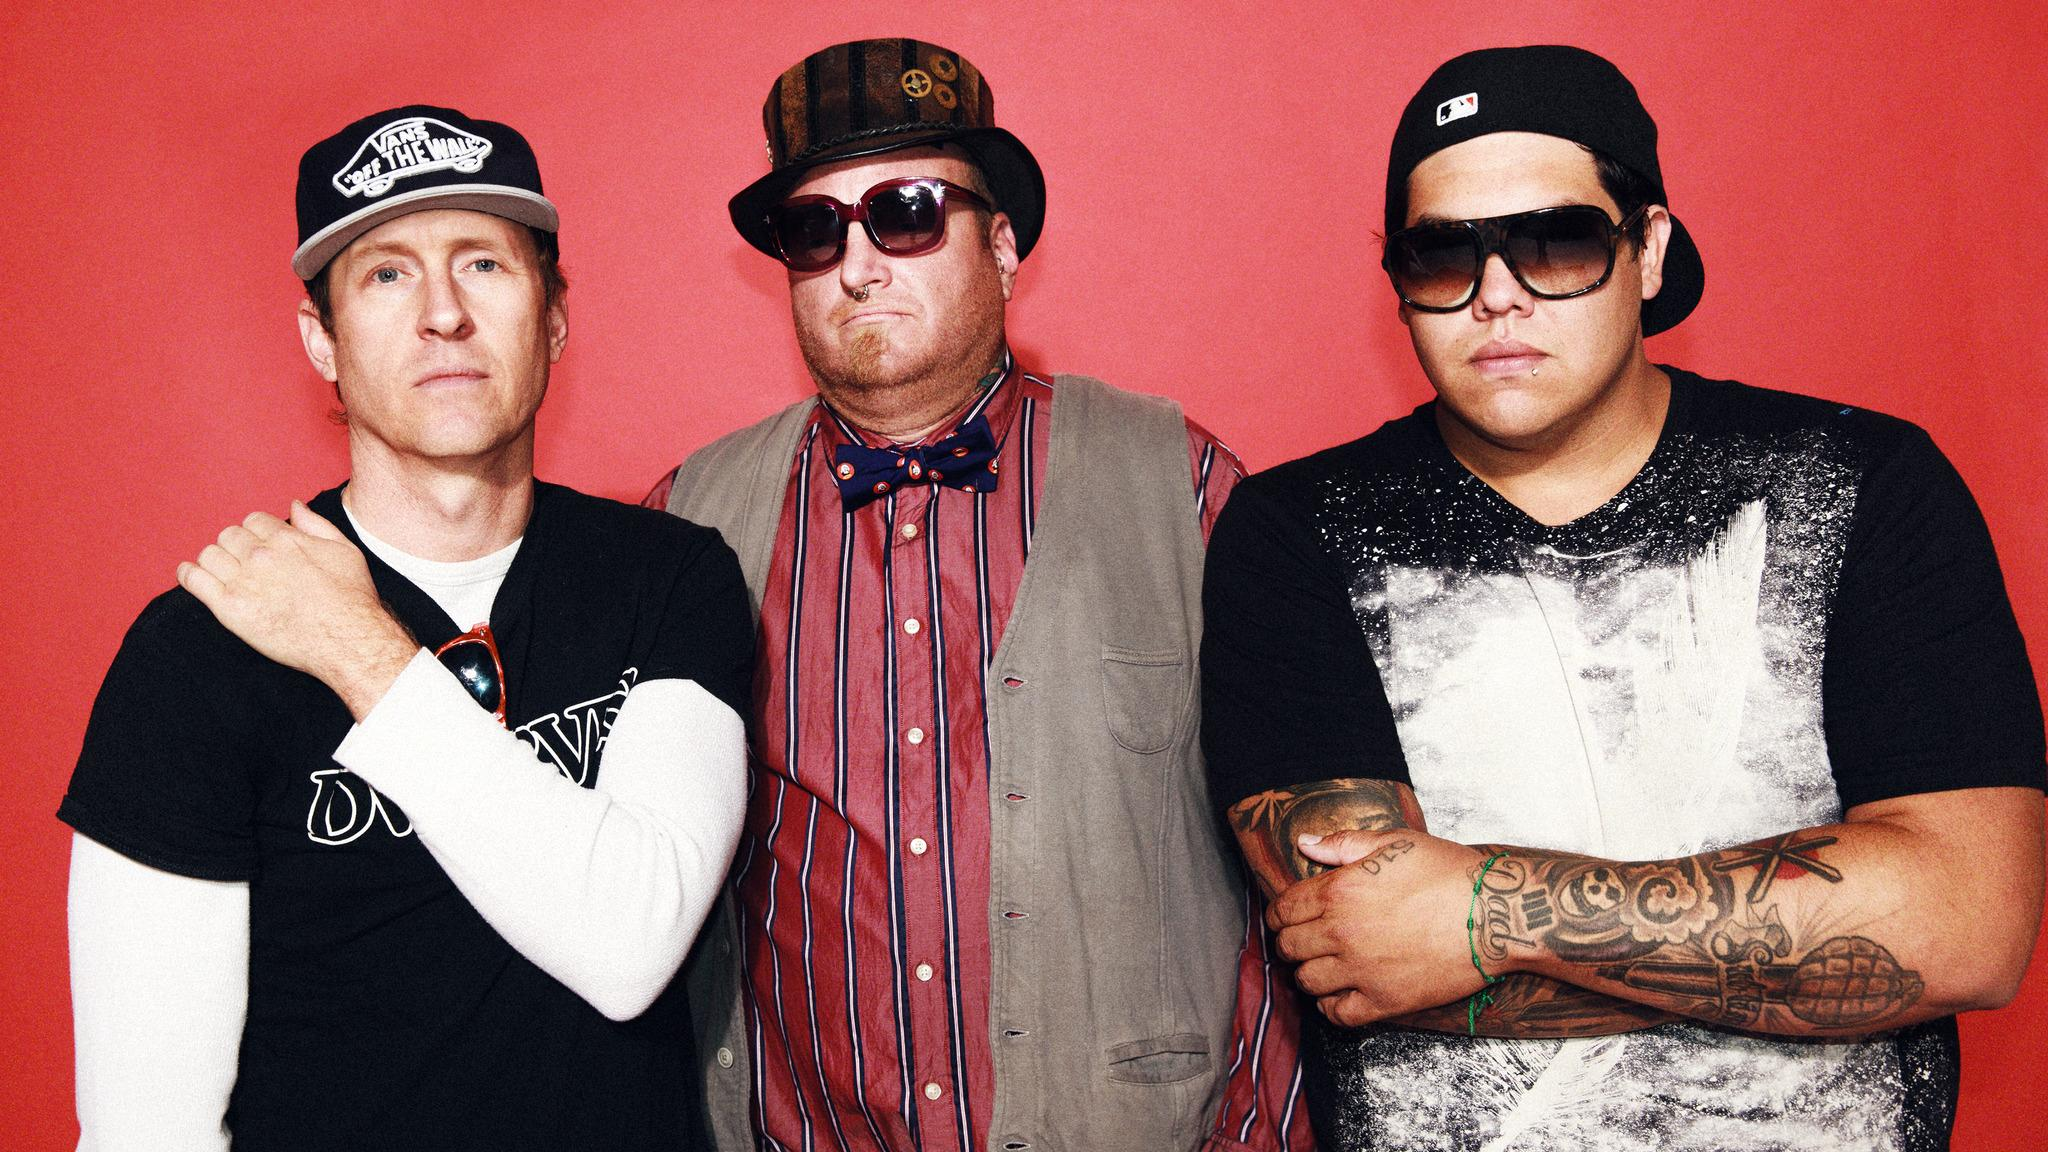 Sublime with Rome Summer Tour 2016 at Comerica Theatre